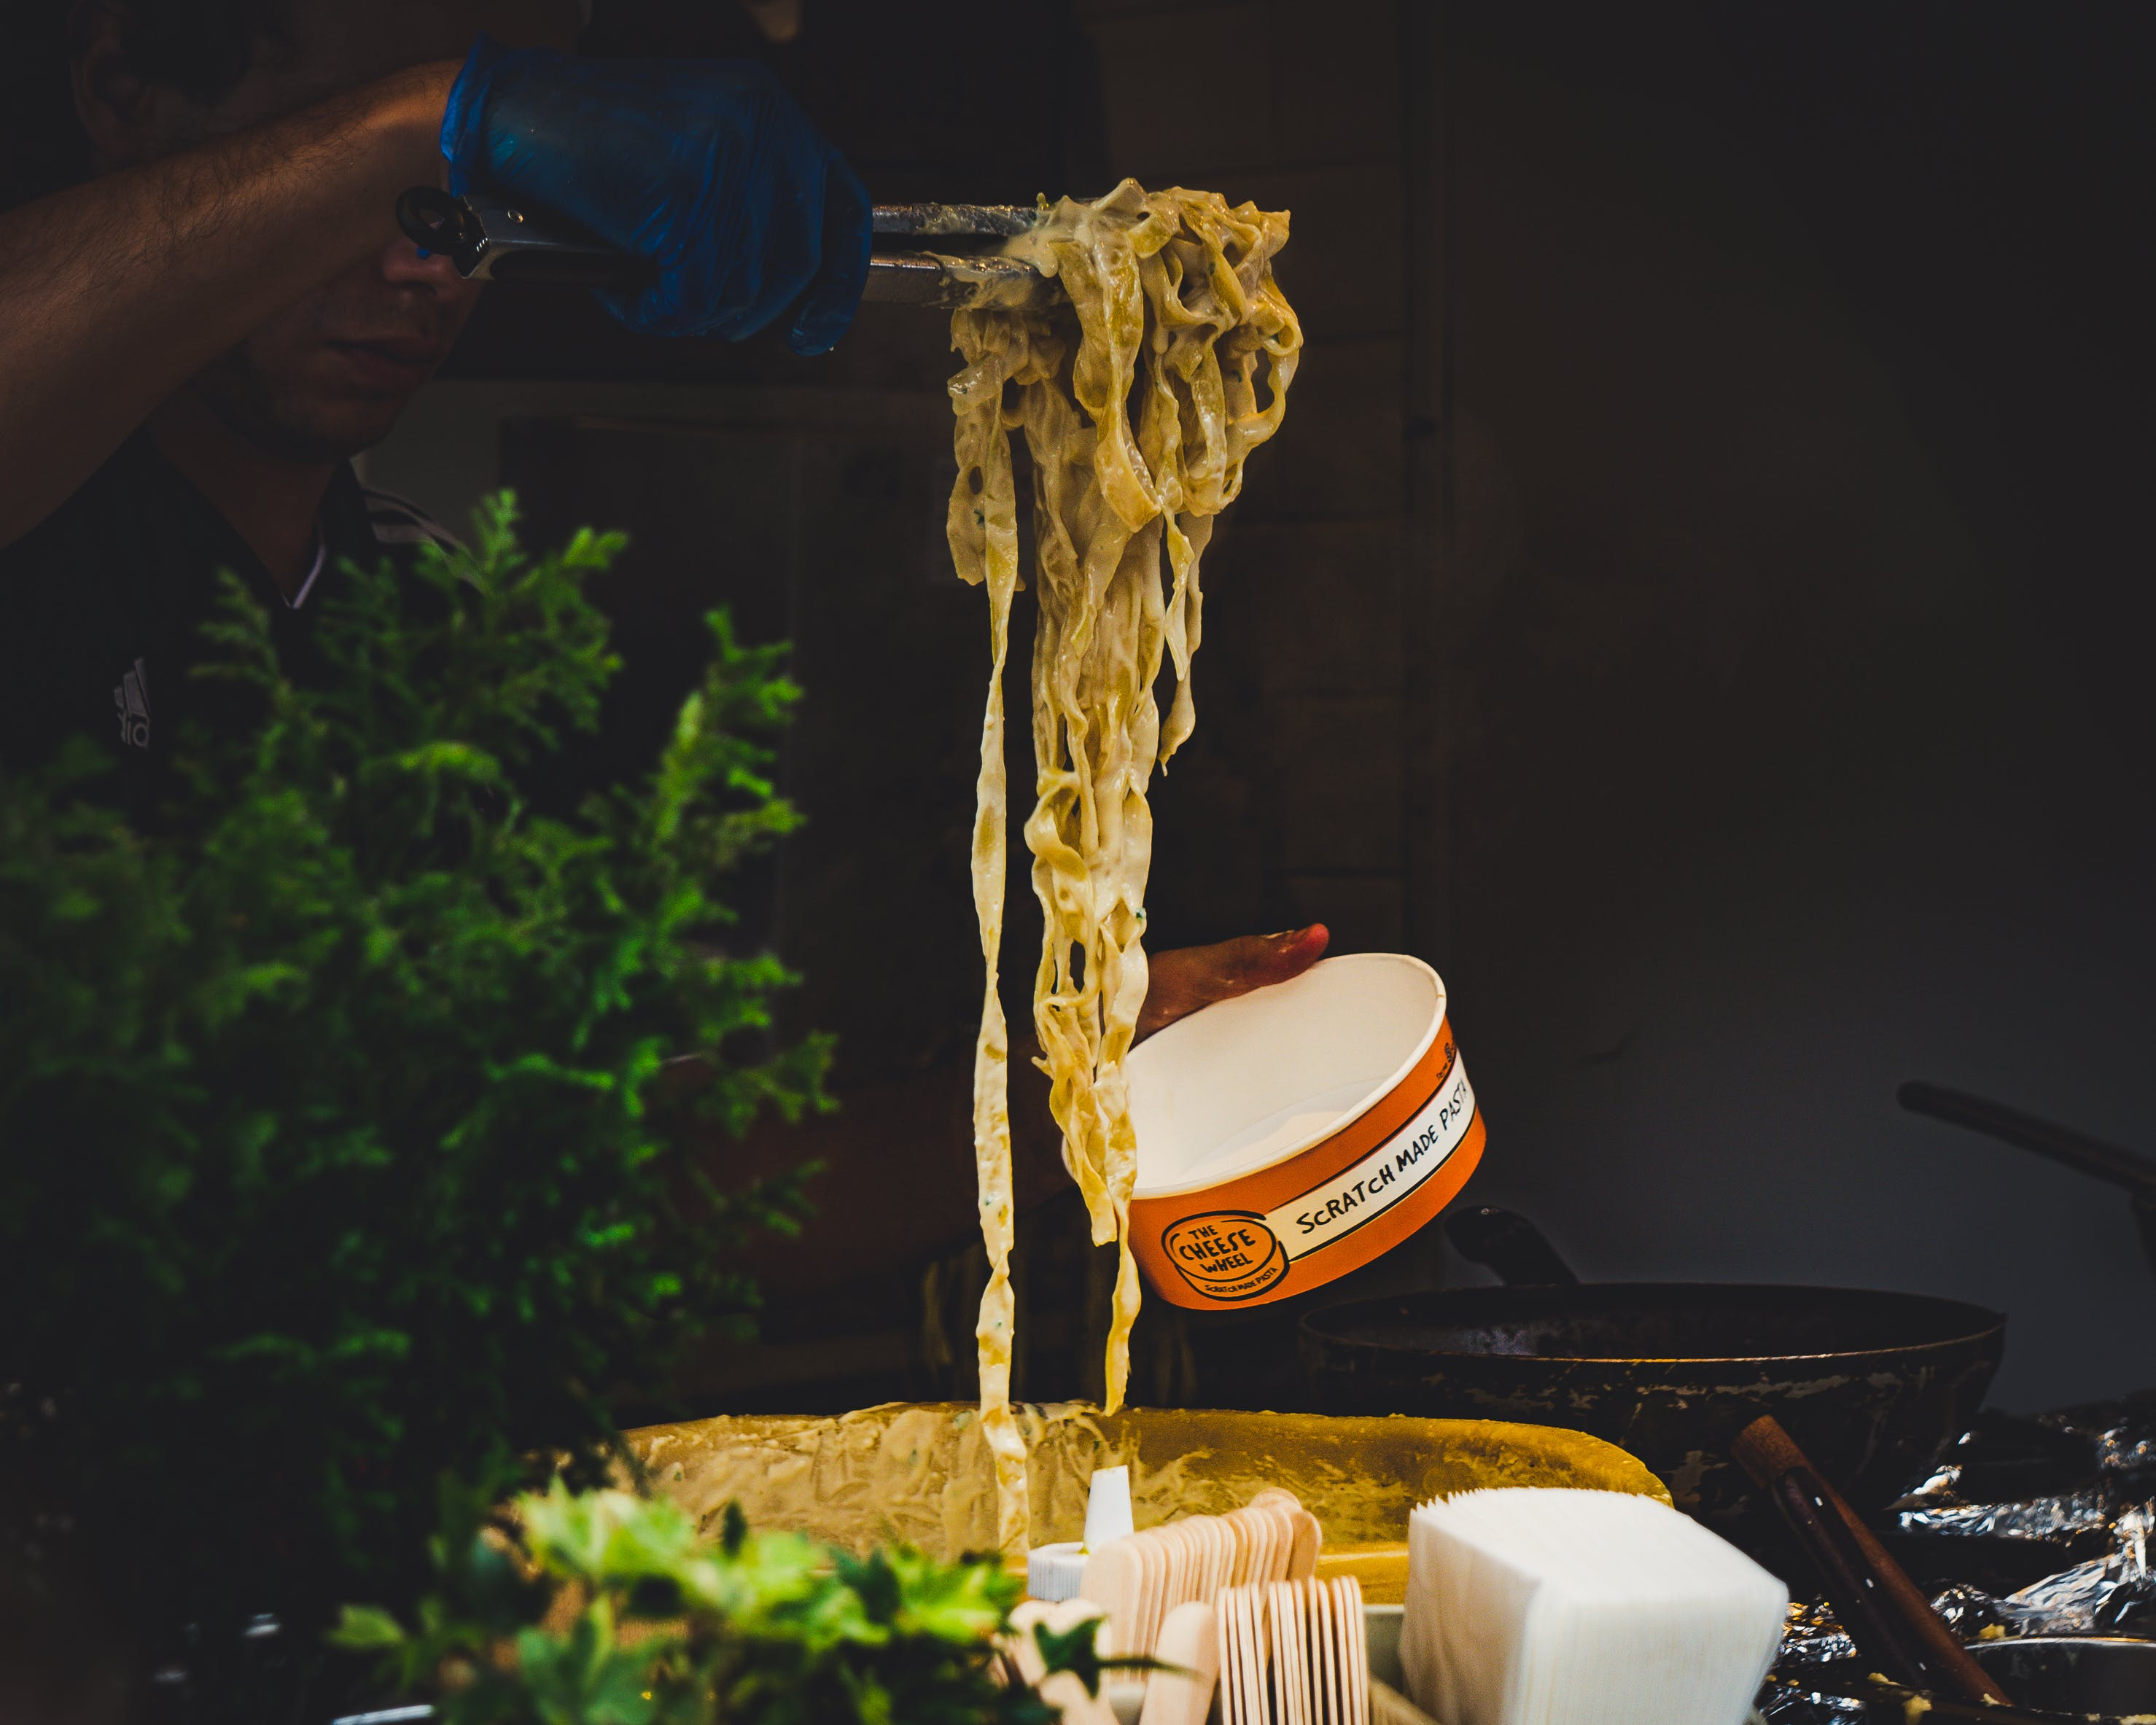 Man Serving Pasta on a Paper Cup